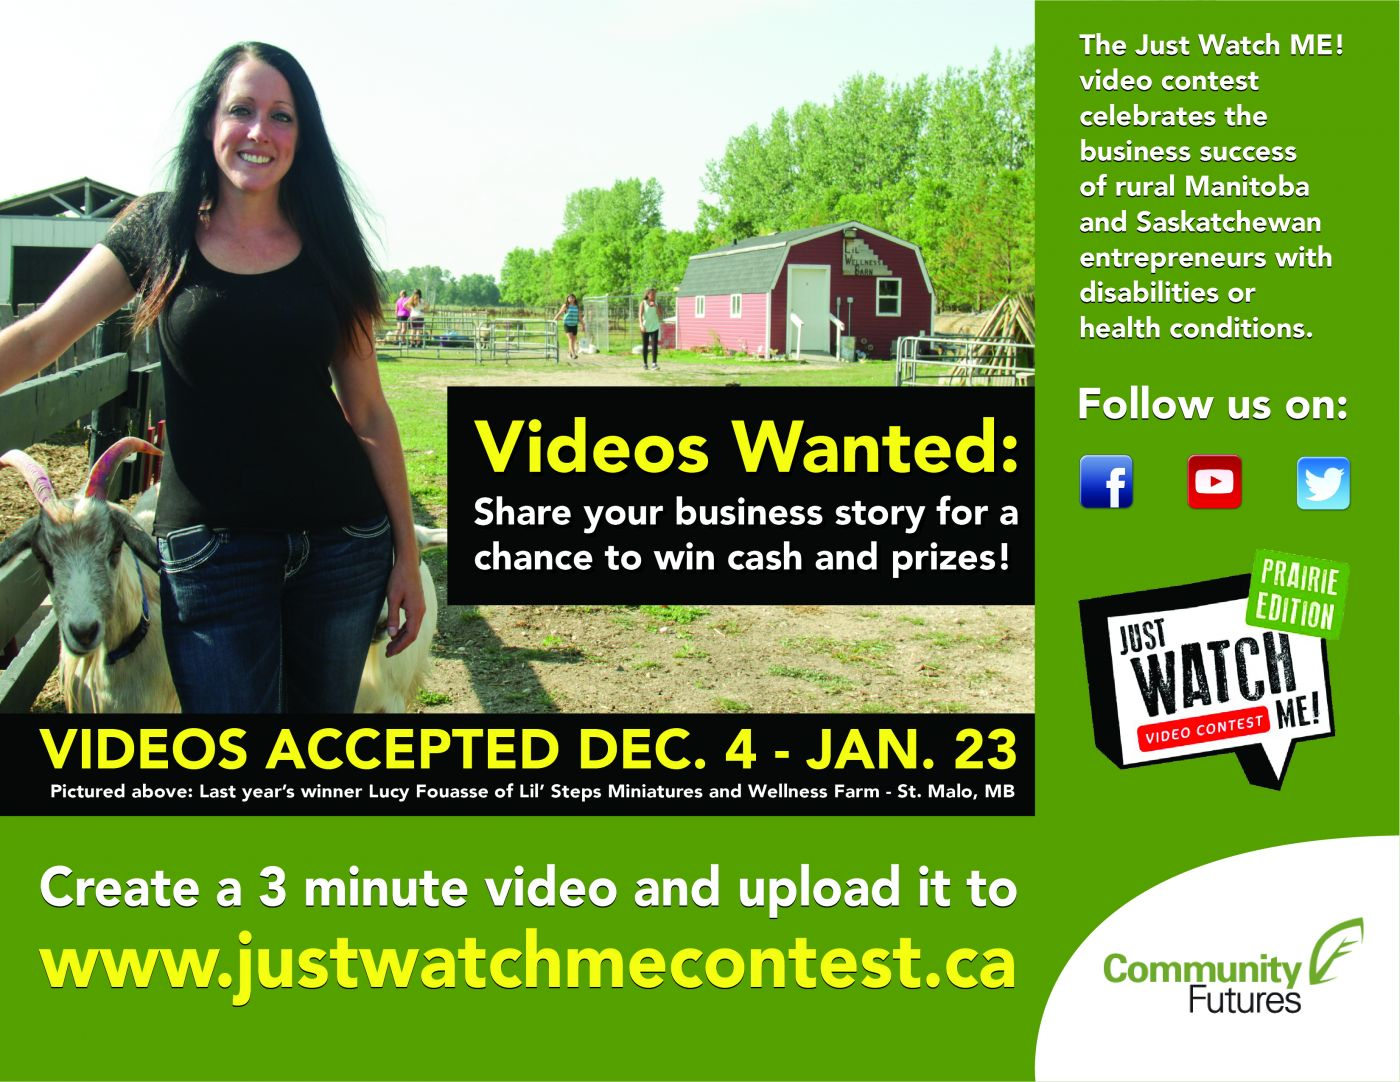 $1,000 Prize Available for Entrepreneurs With Disabilities: Just Watch ME! Video Contest Open Until Jan 23, 2018